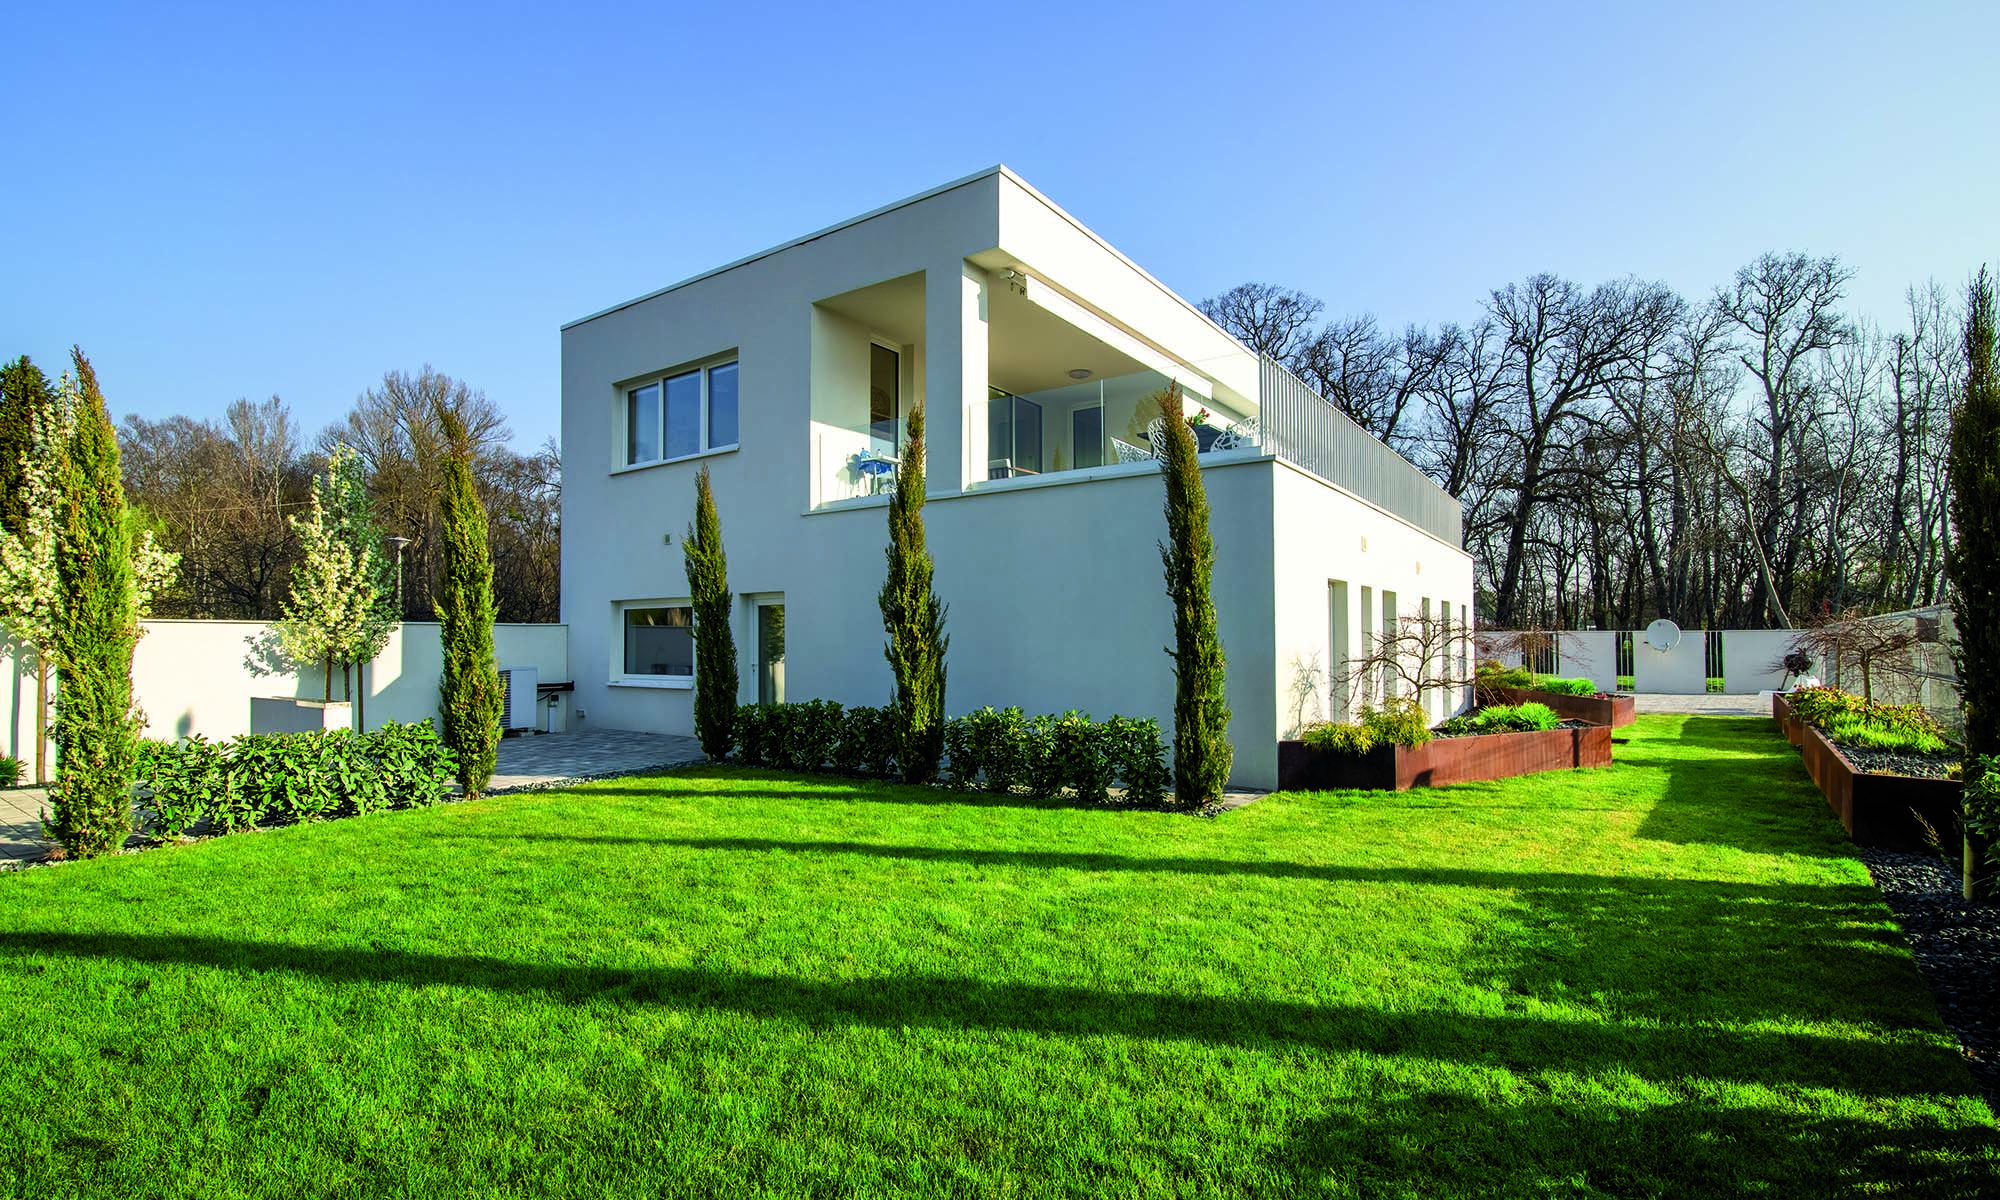 One Family House in Hungary - The façades were insulated with the MAPETHERM SYSTEM, then coated with SILANCOLOR BASE COAT and SILANCOLOR TONACHINO.